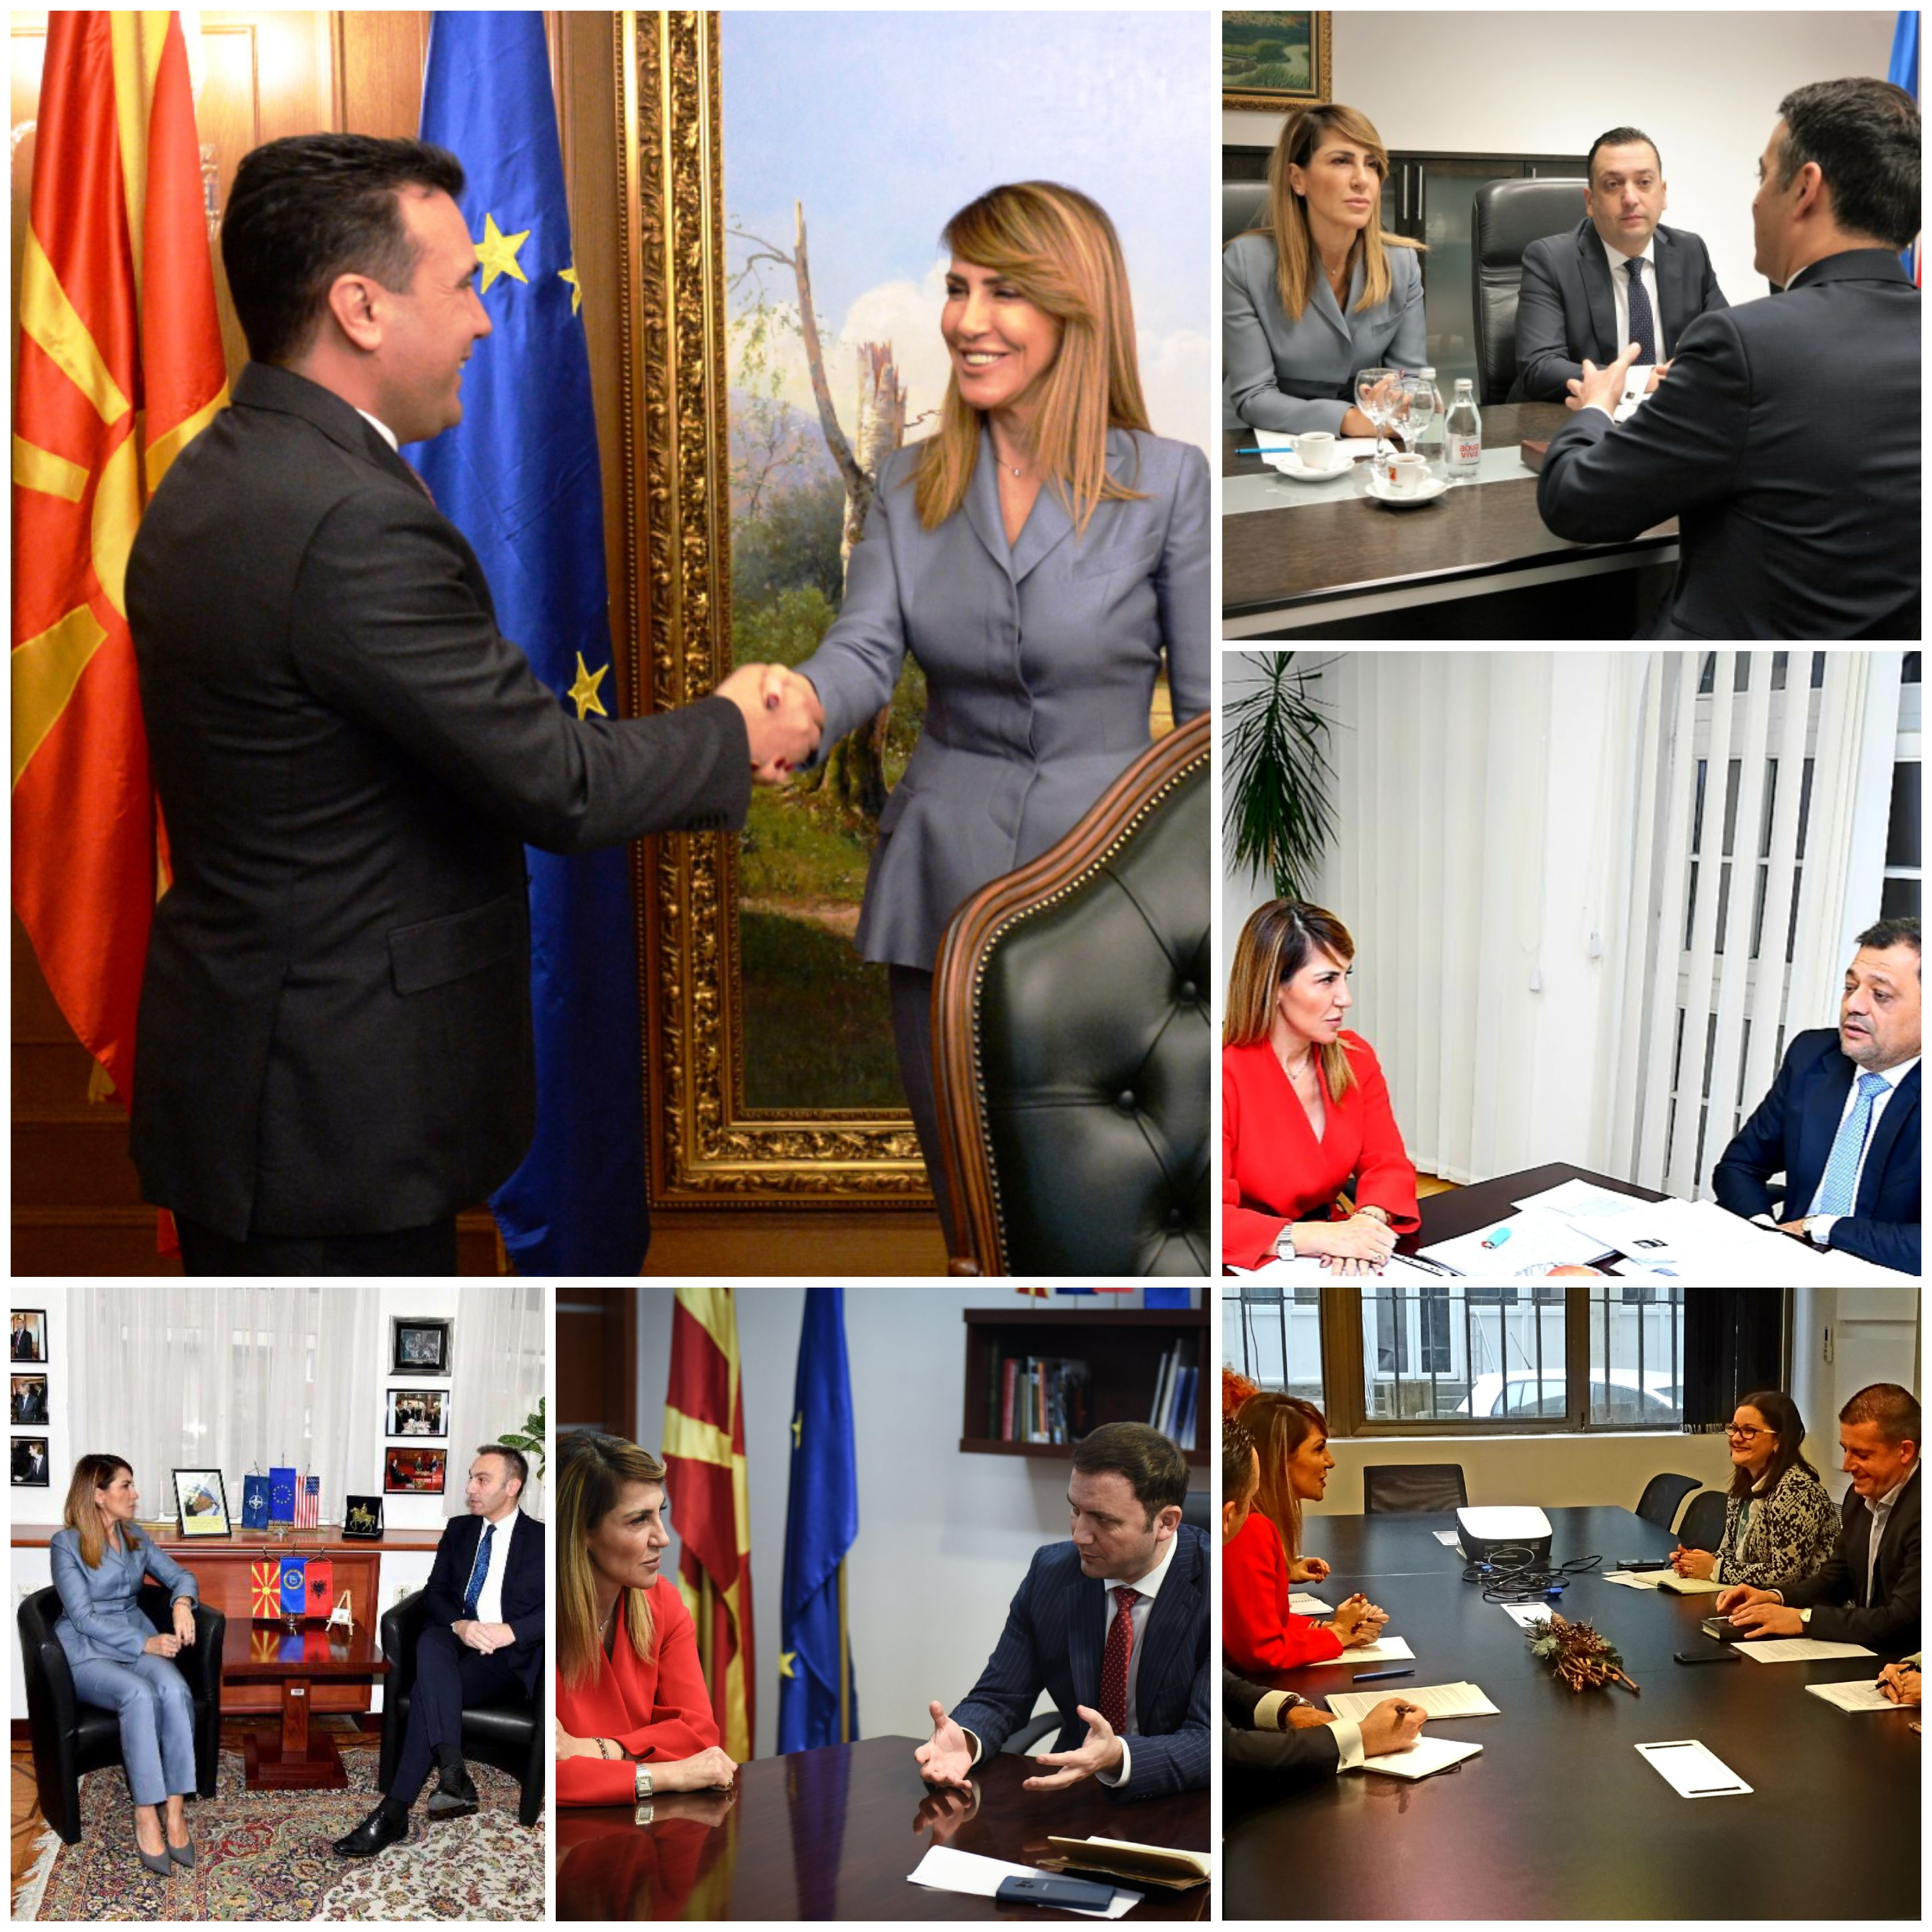 RCC Secretary General Majlinda Bregu meets top officials during her visit to Skopje on 21-22 January 2019